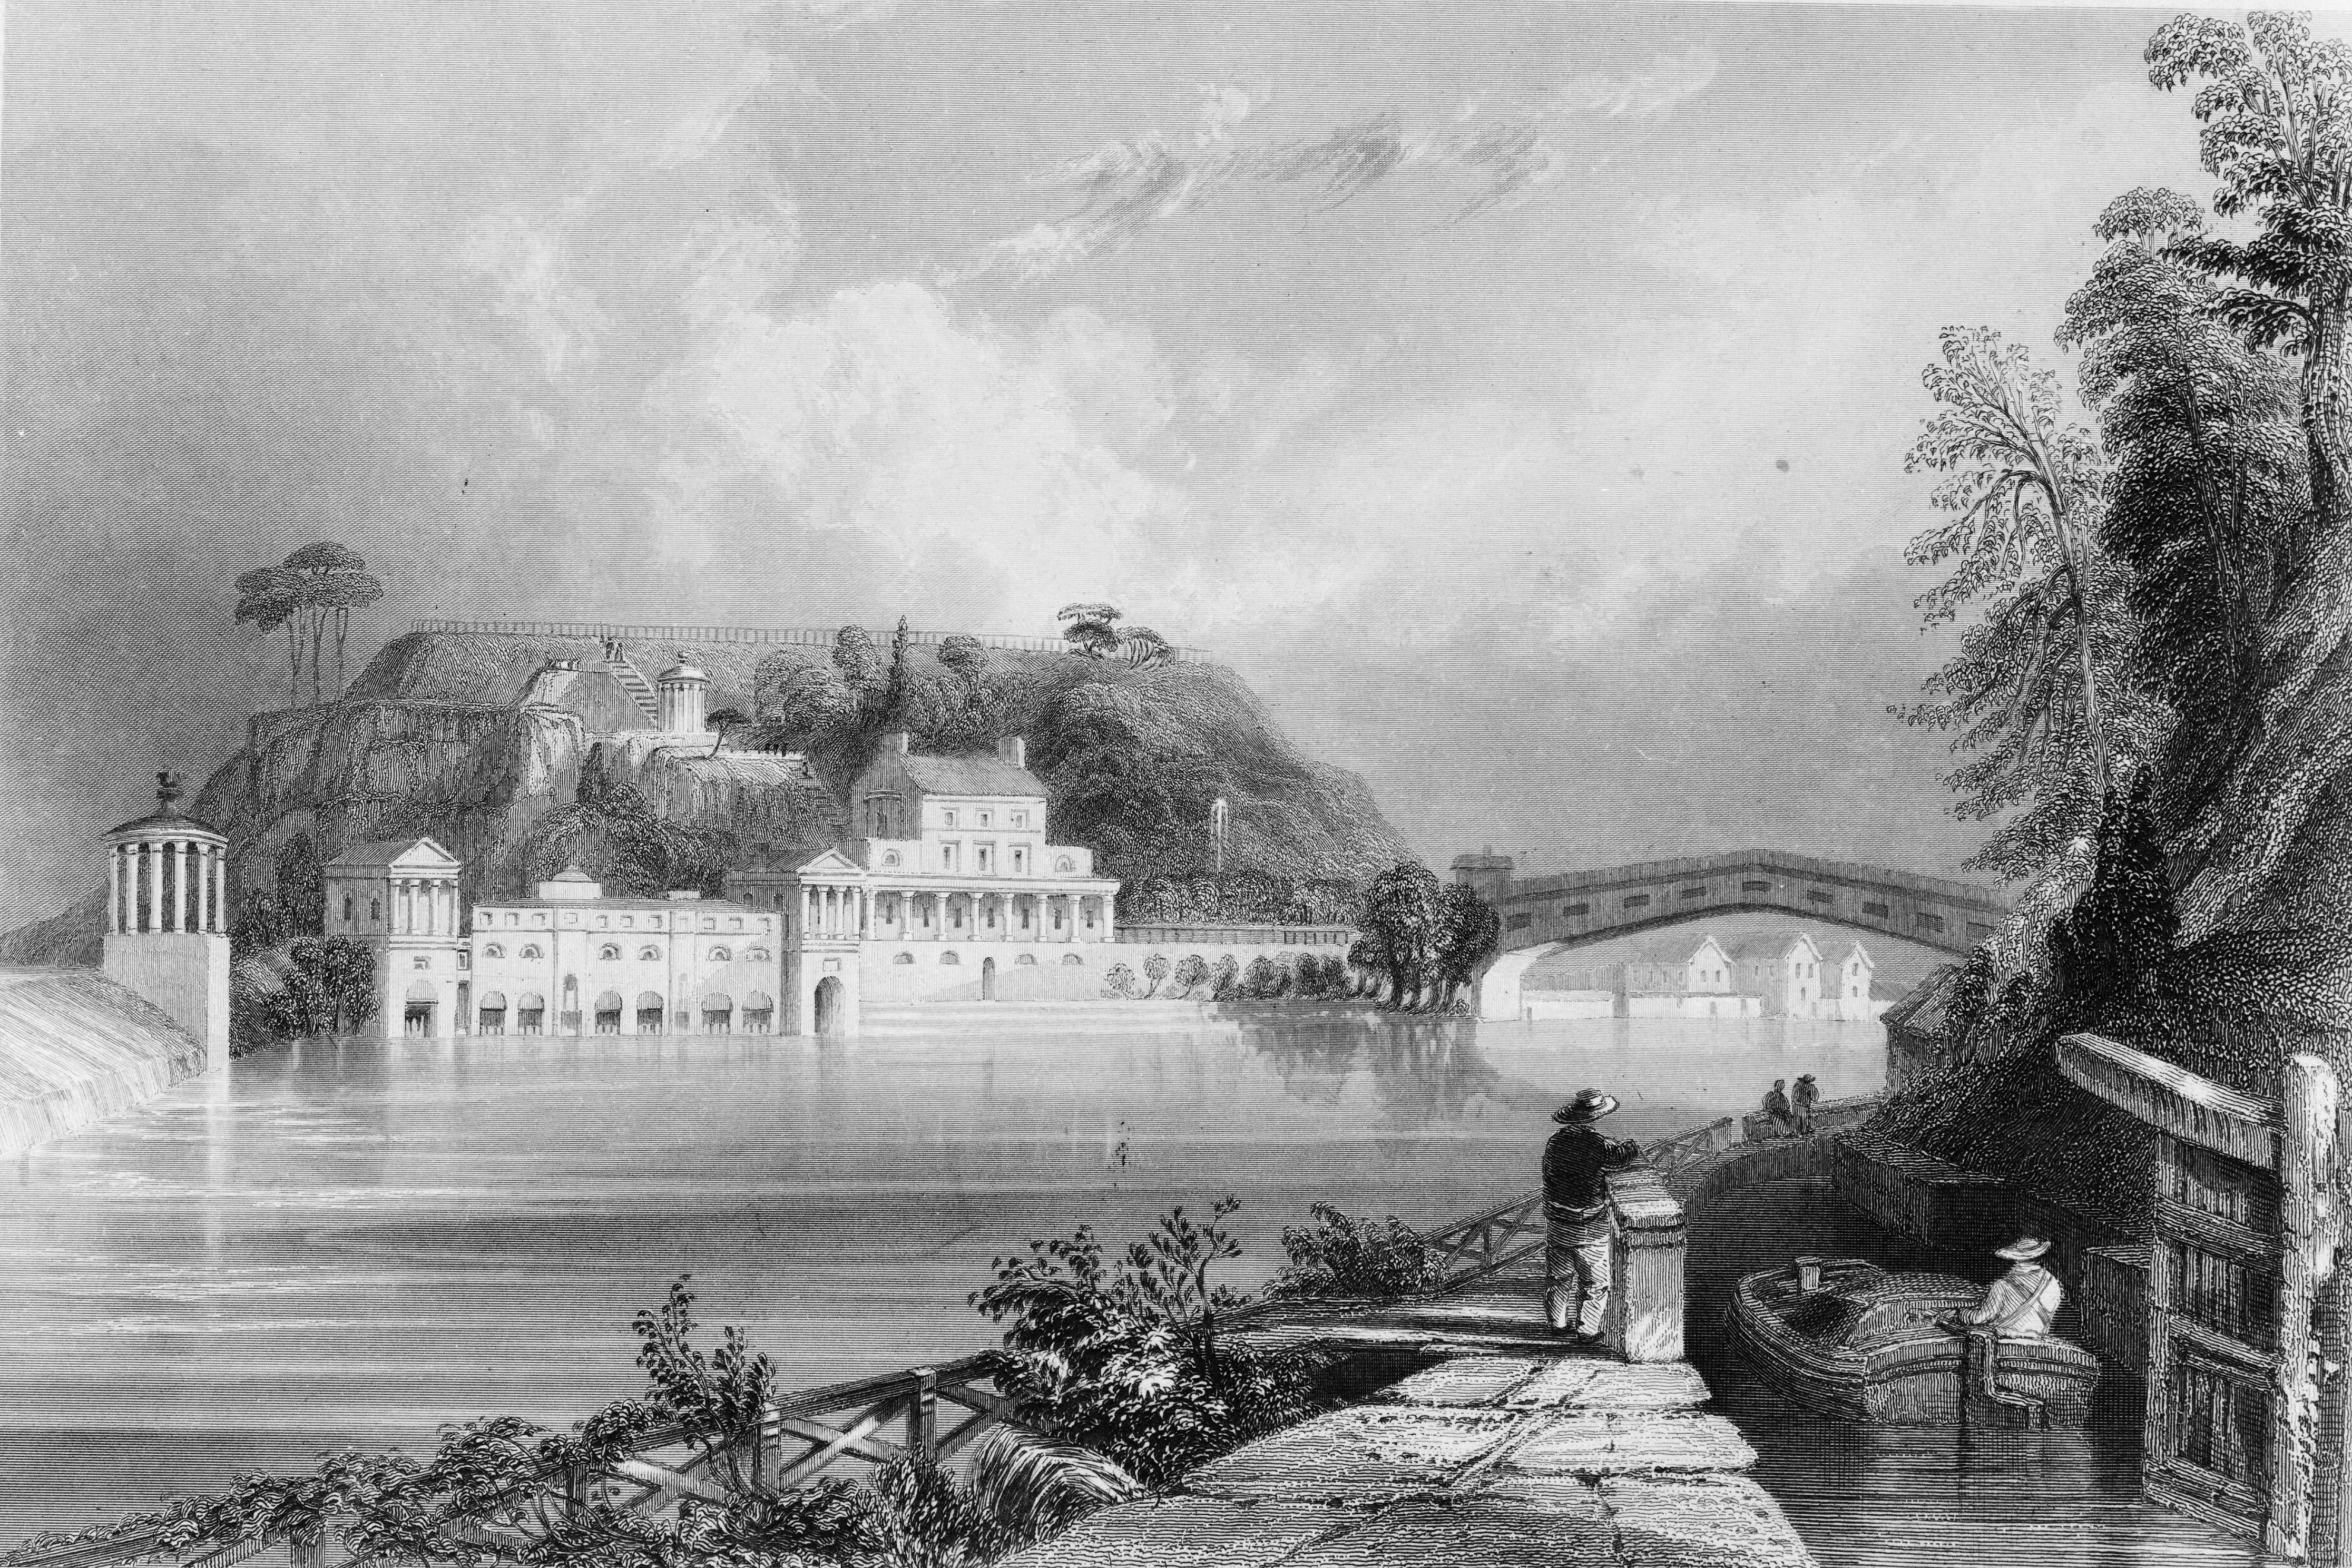 1835 Engraving of the Fairmount Water Works